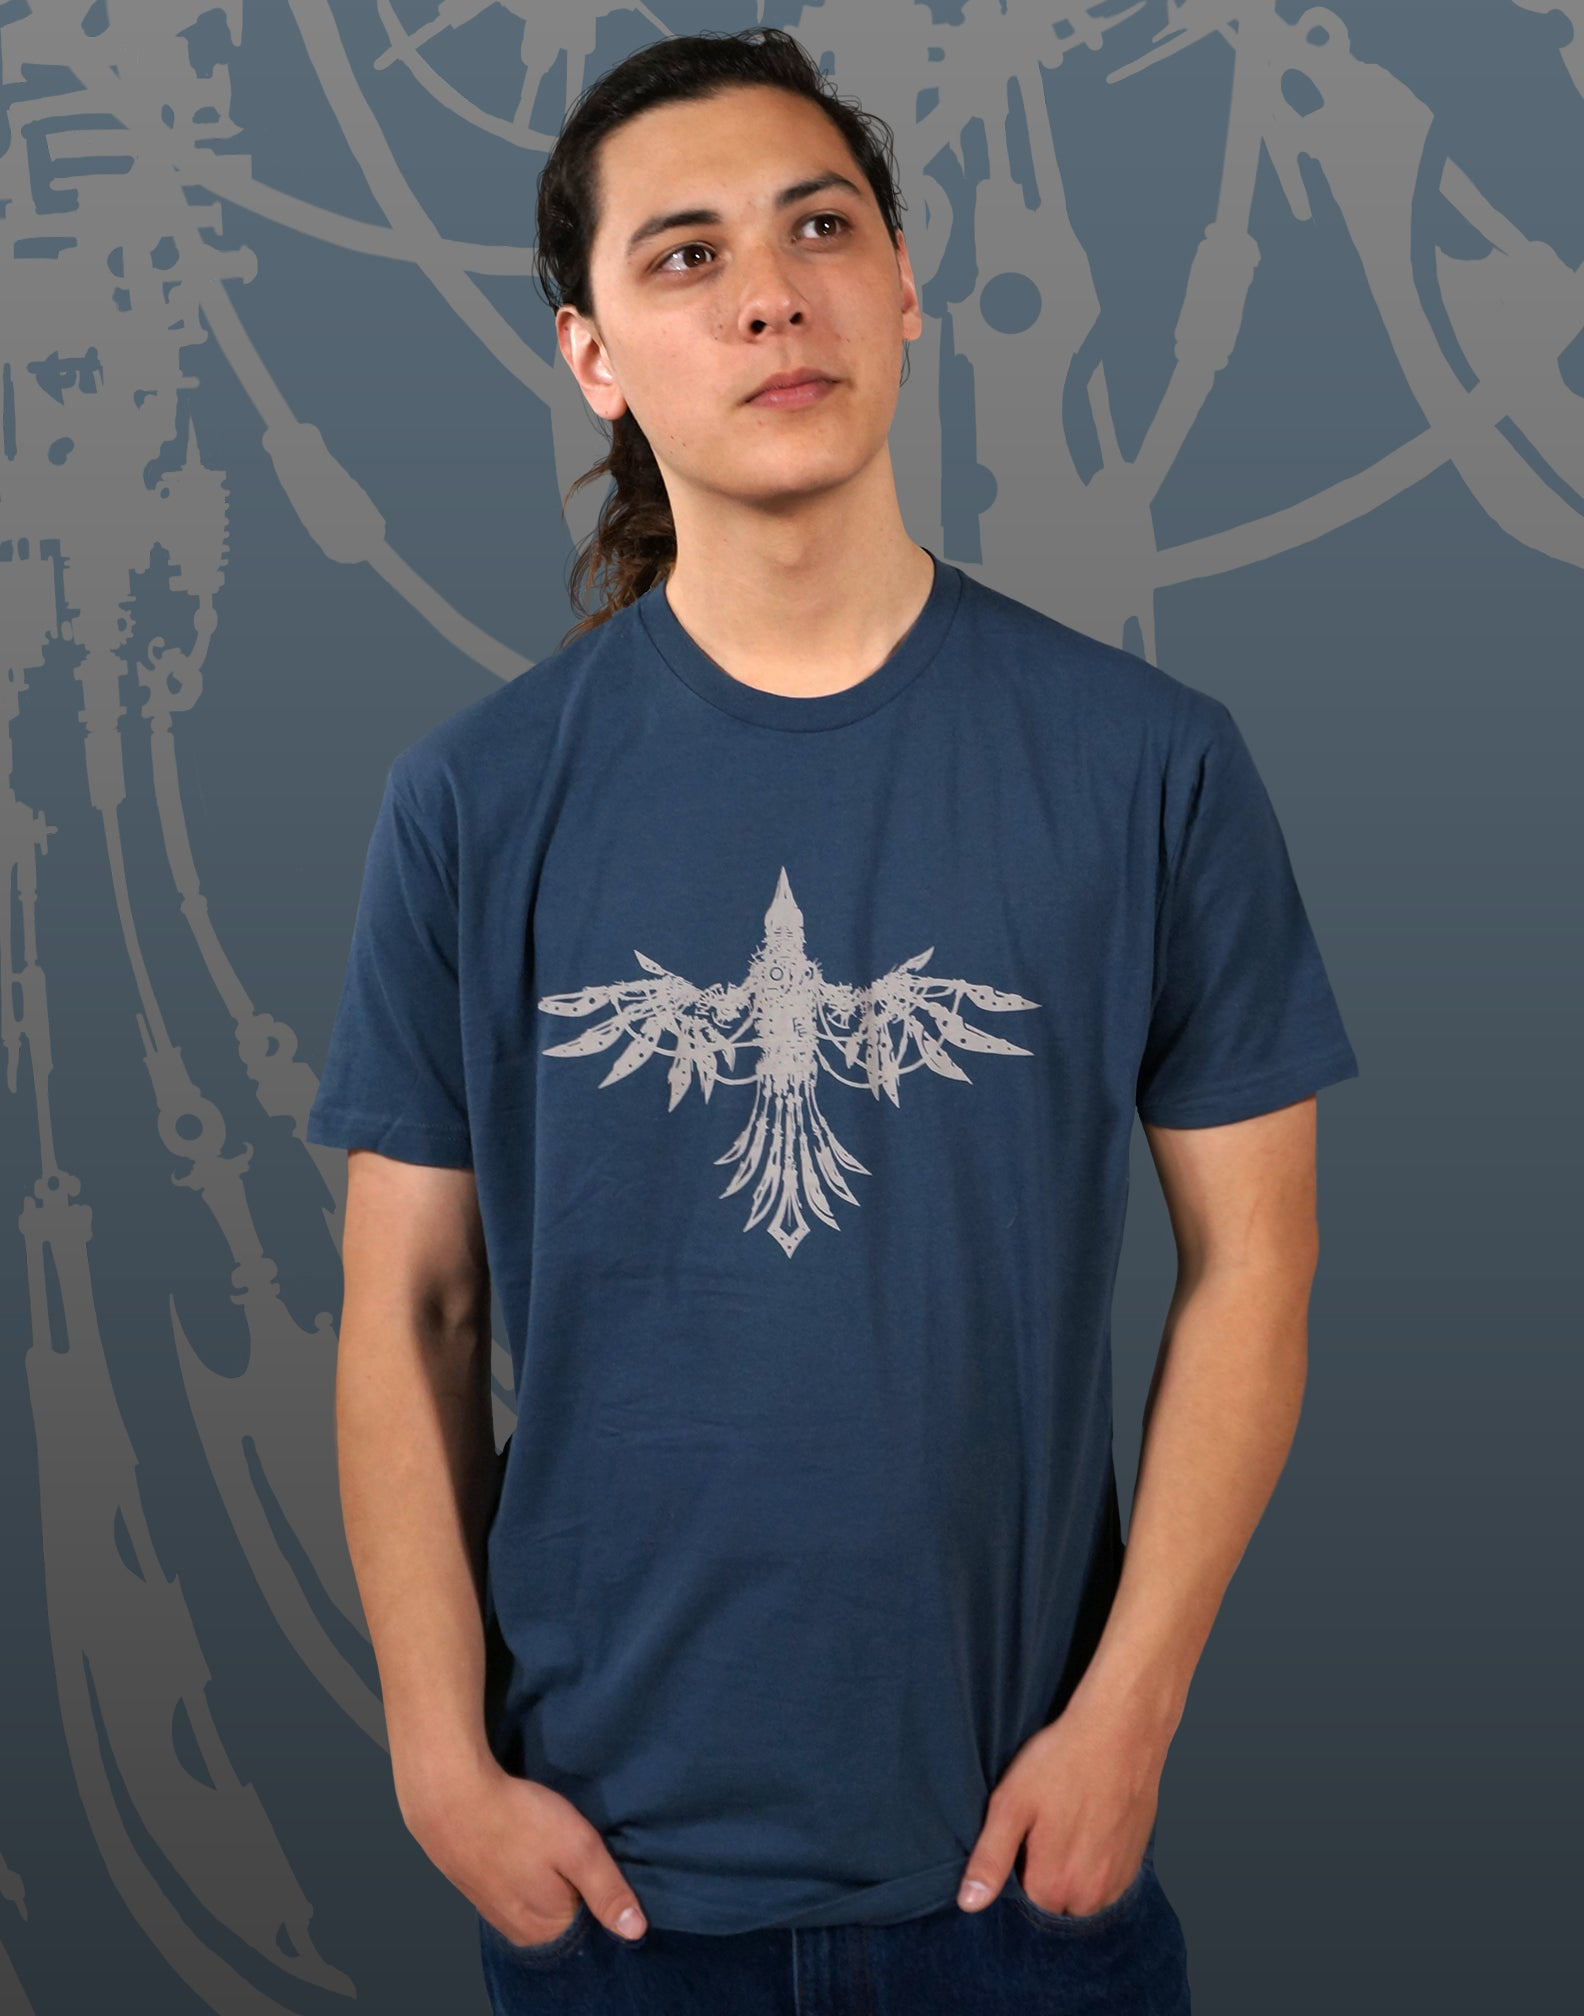 Mechanical Bird Men's Fitted Crew Neck